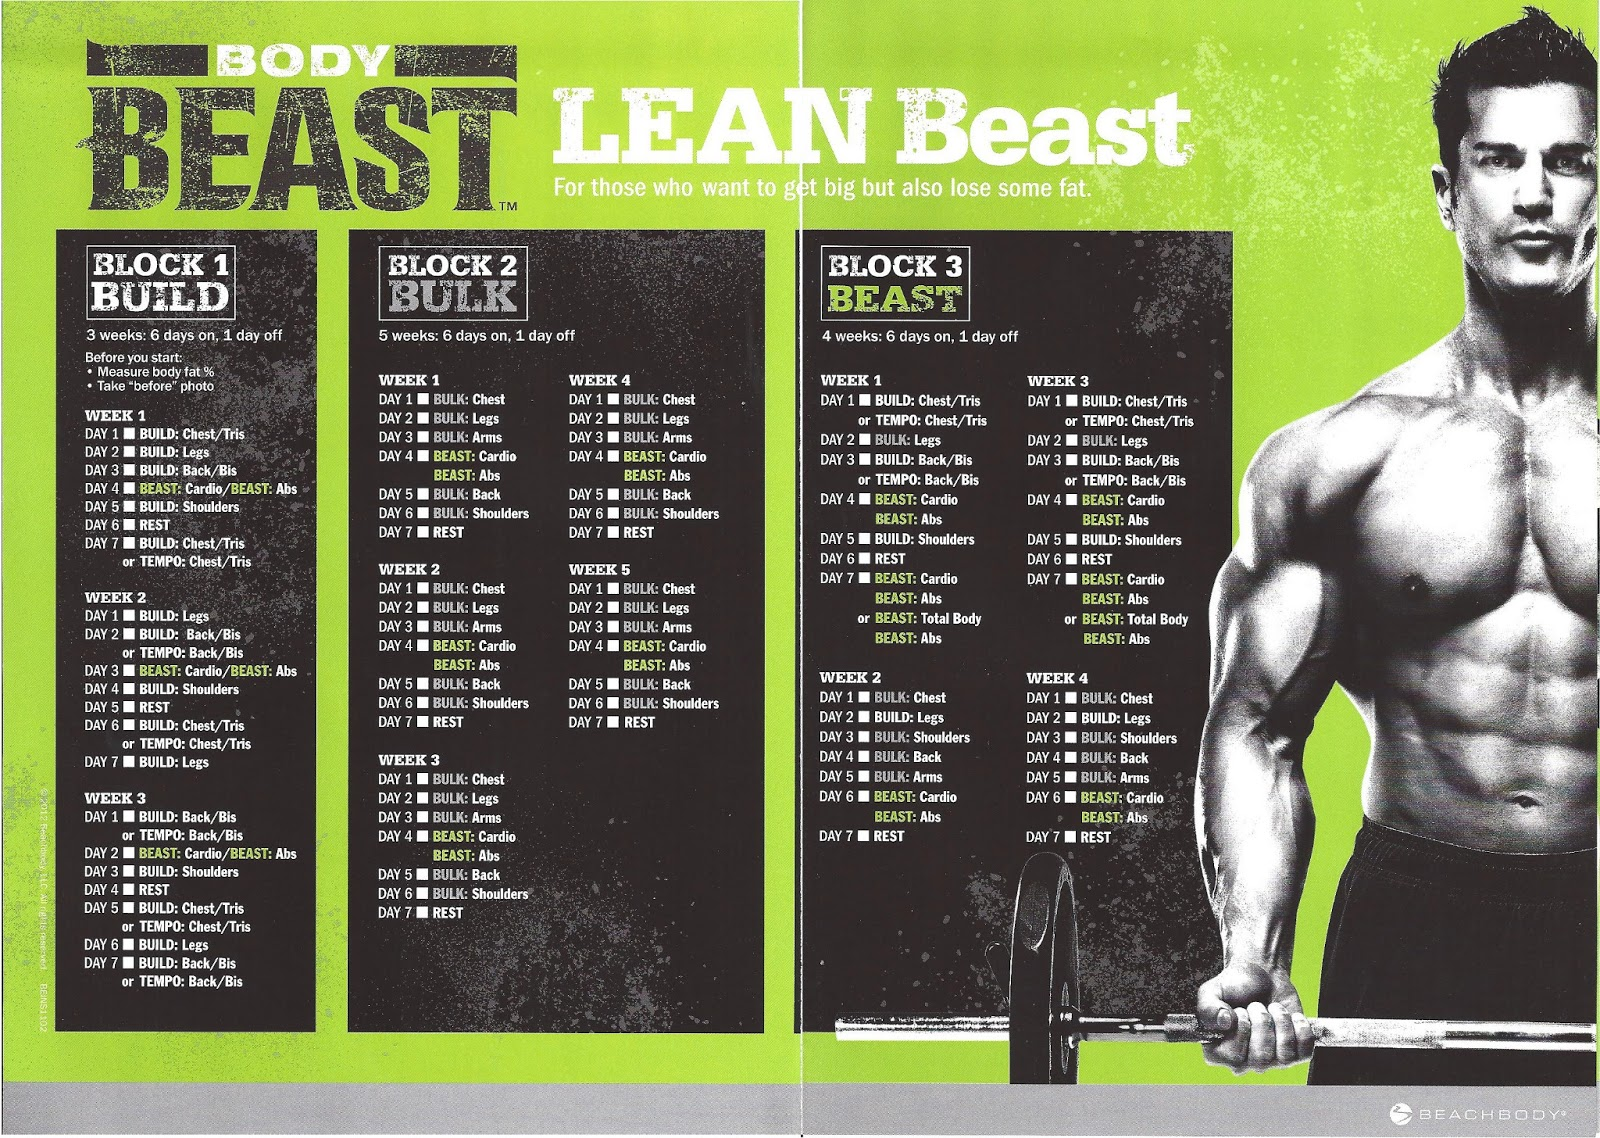 Tapout Xt Meal Plan